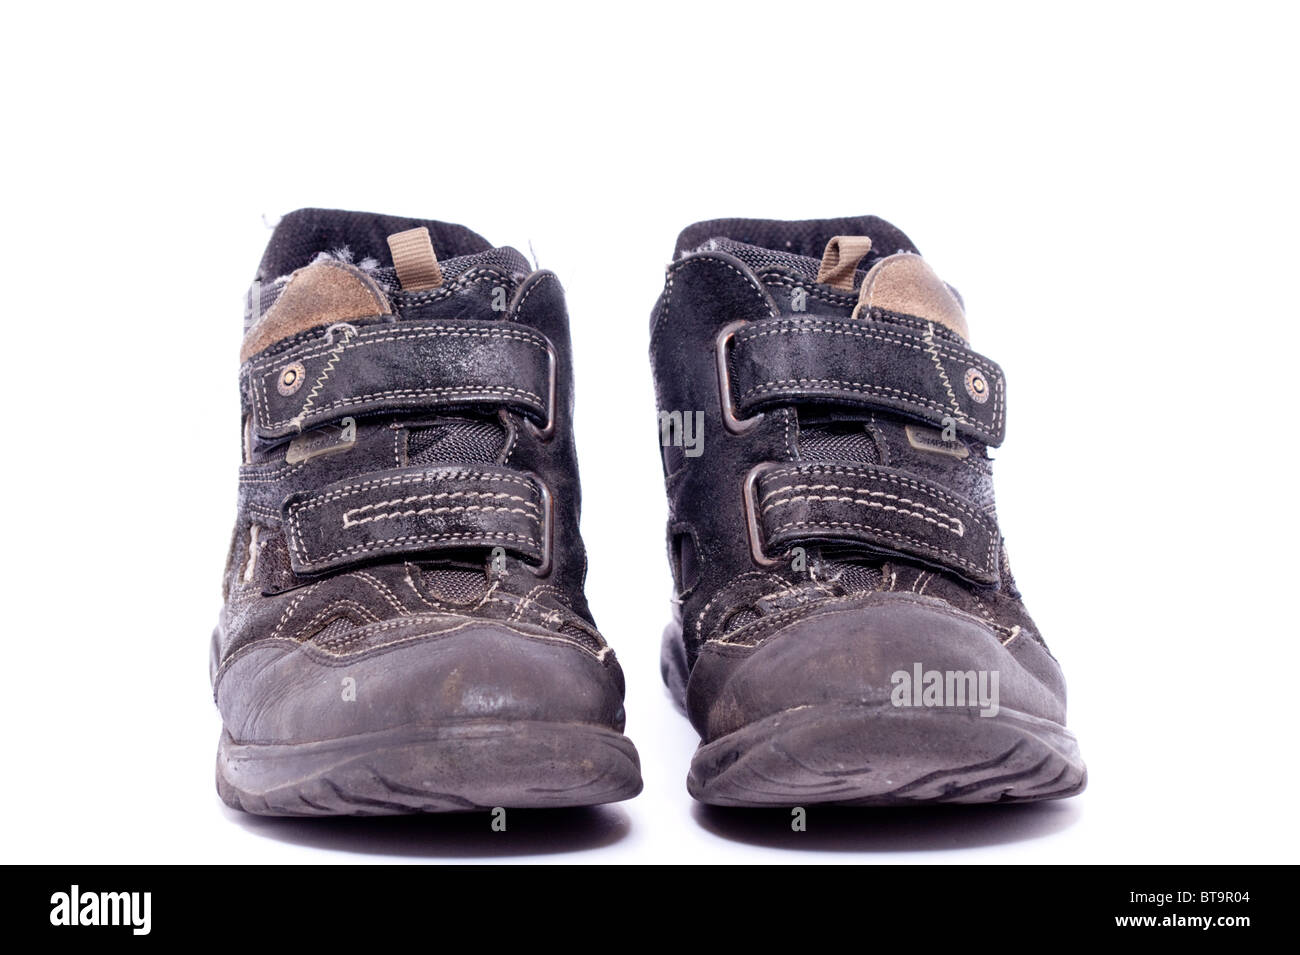 A pair of well worn boys boots on a white background - Stock Image